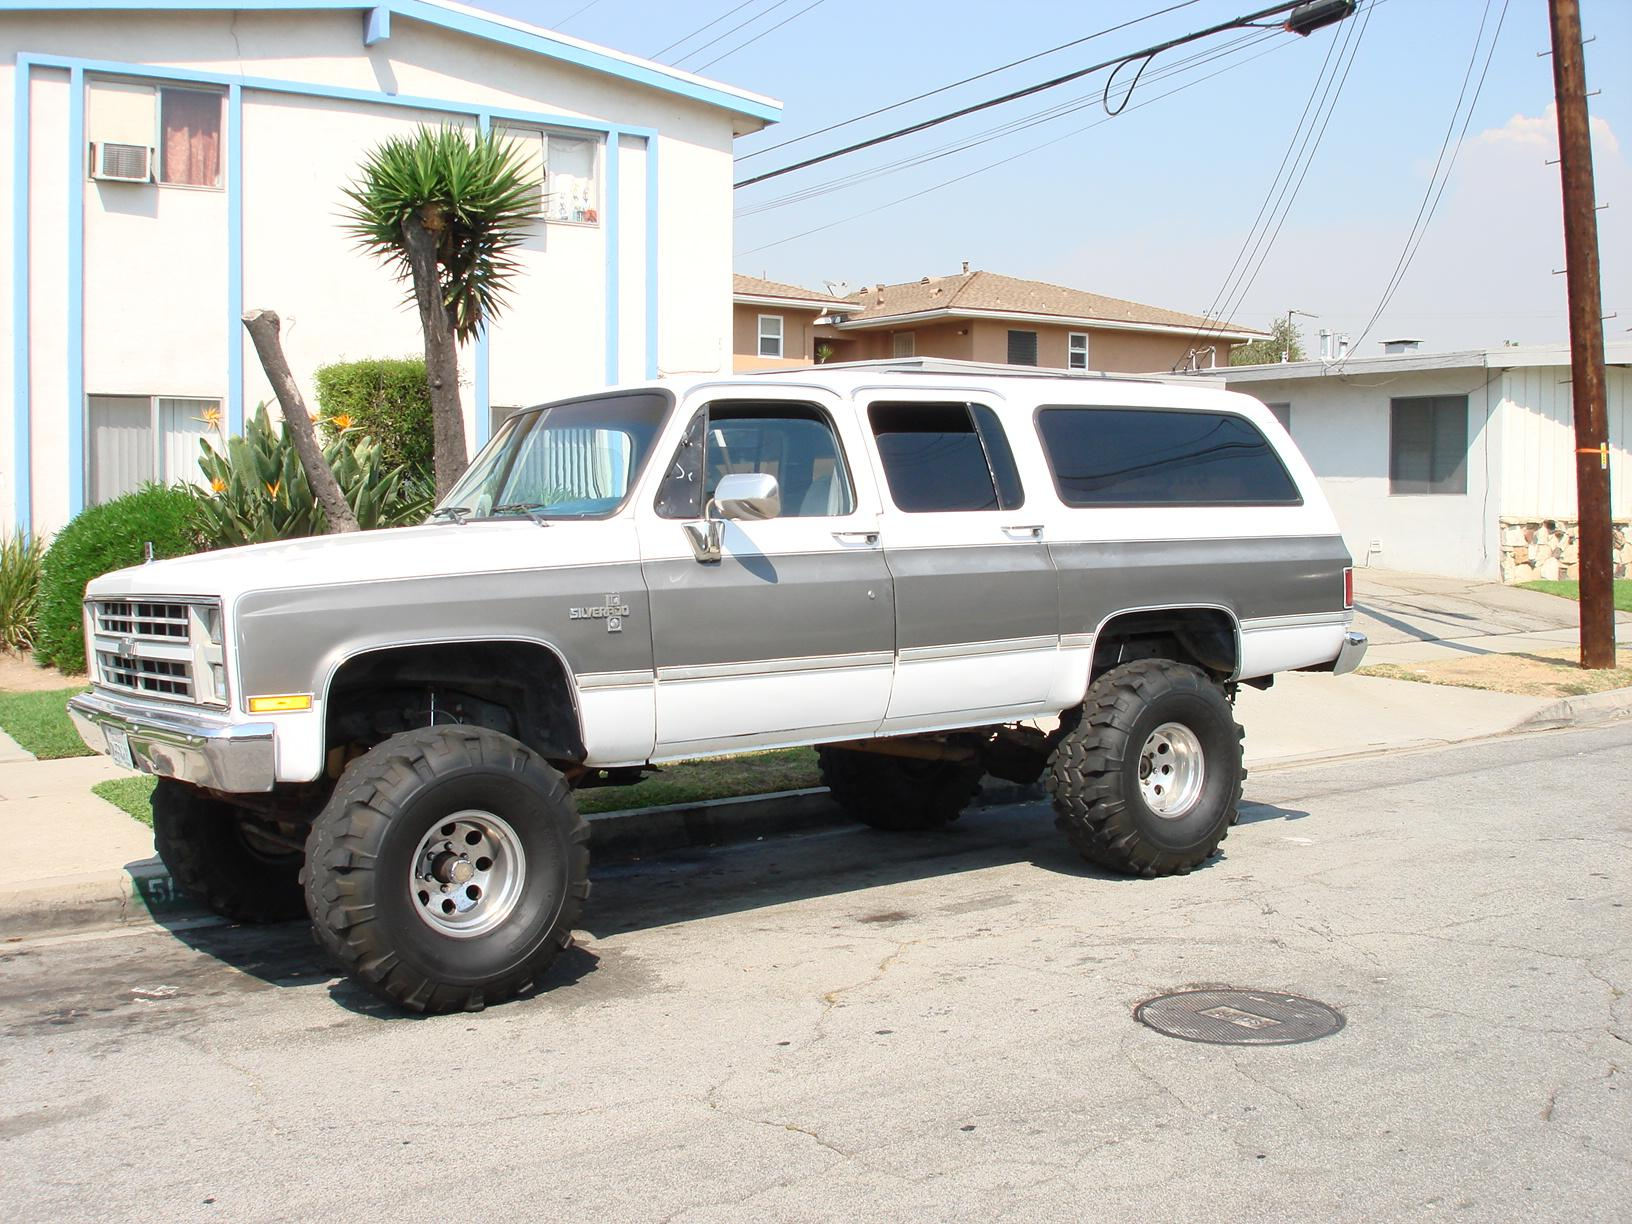 5150CHEVY 1988 Chevrolet Suburban 1500 Specs, Photos ...